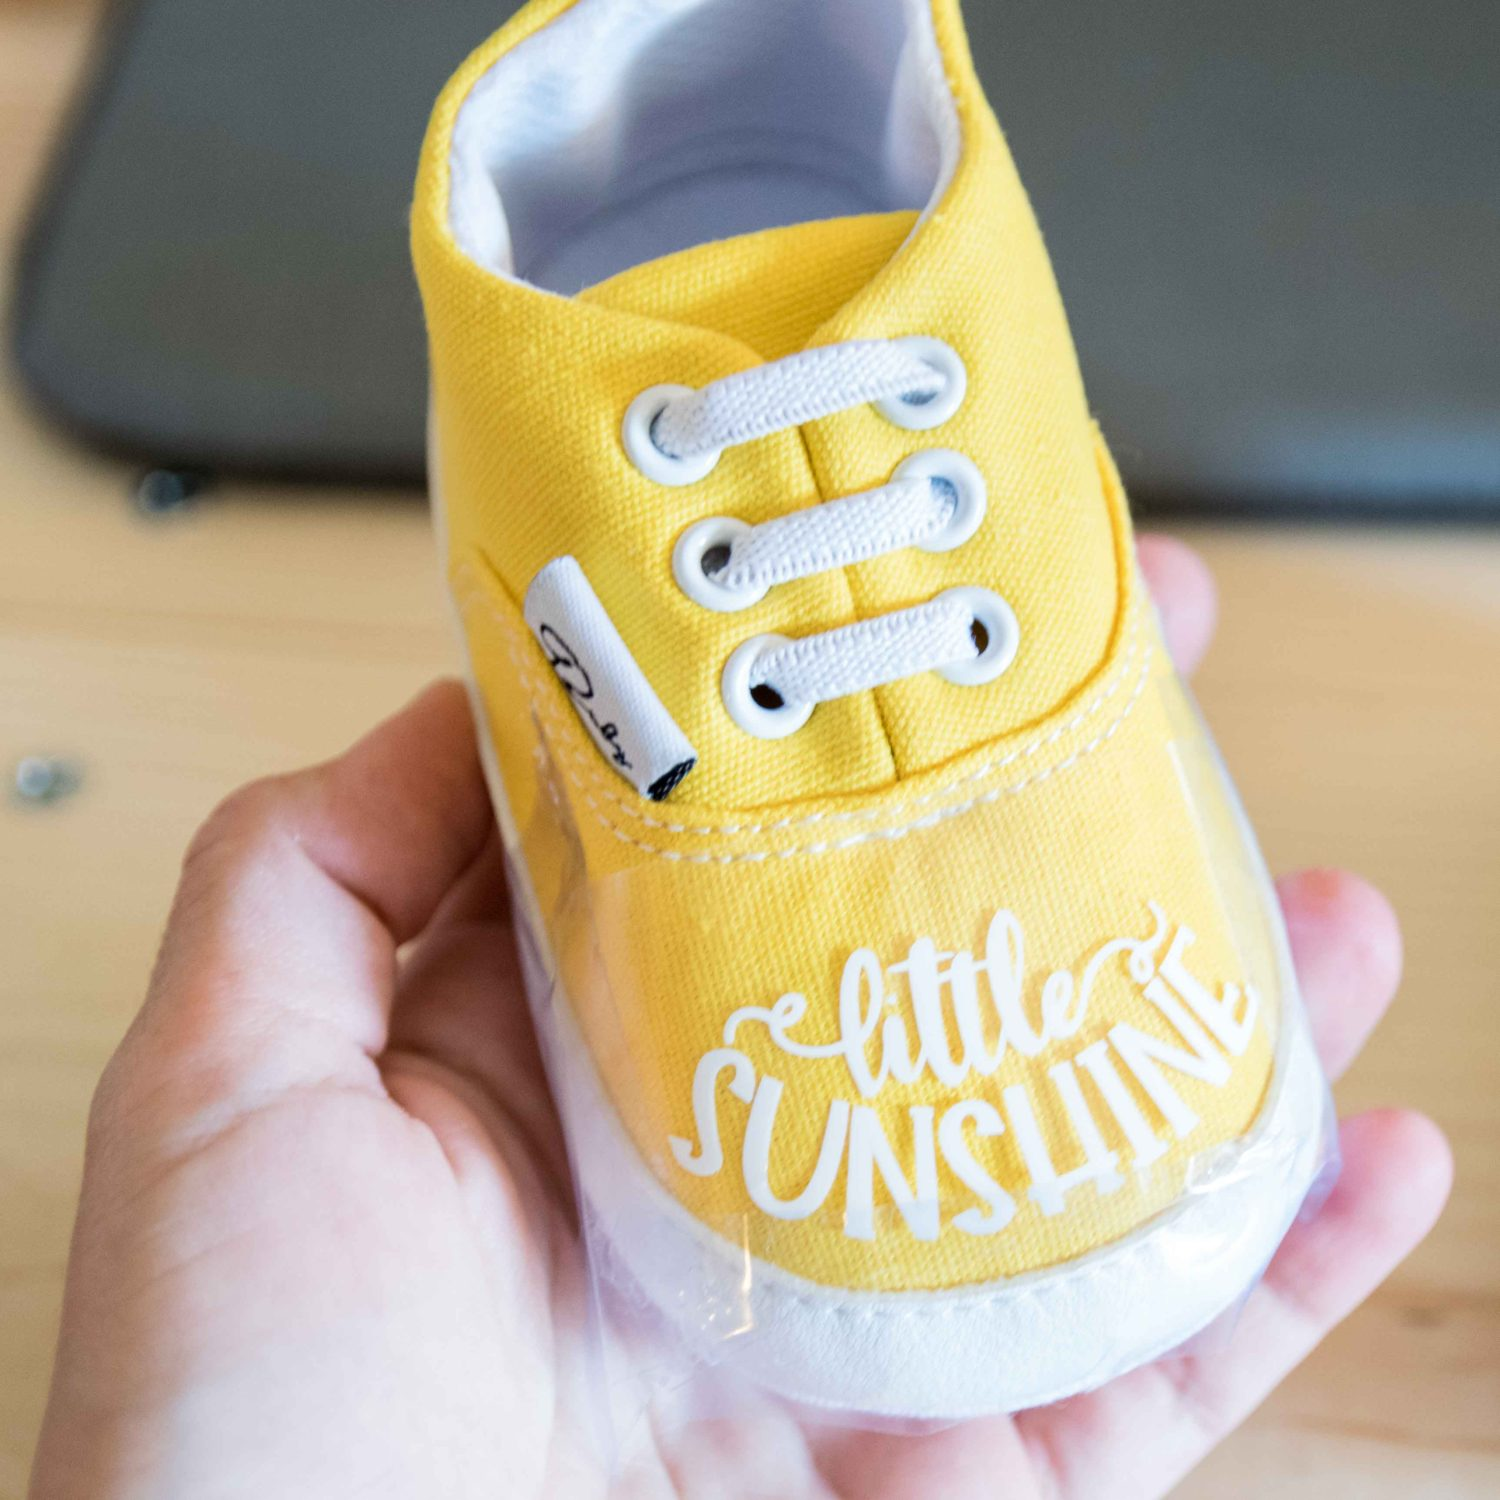 Taping design to baby shoe with heat transfer tape